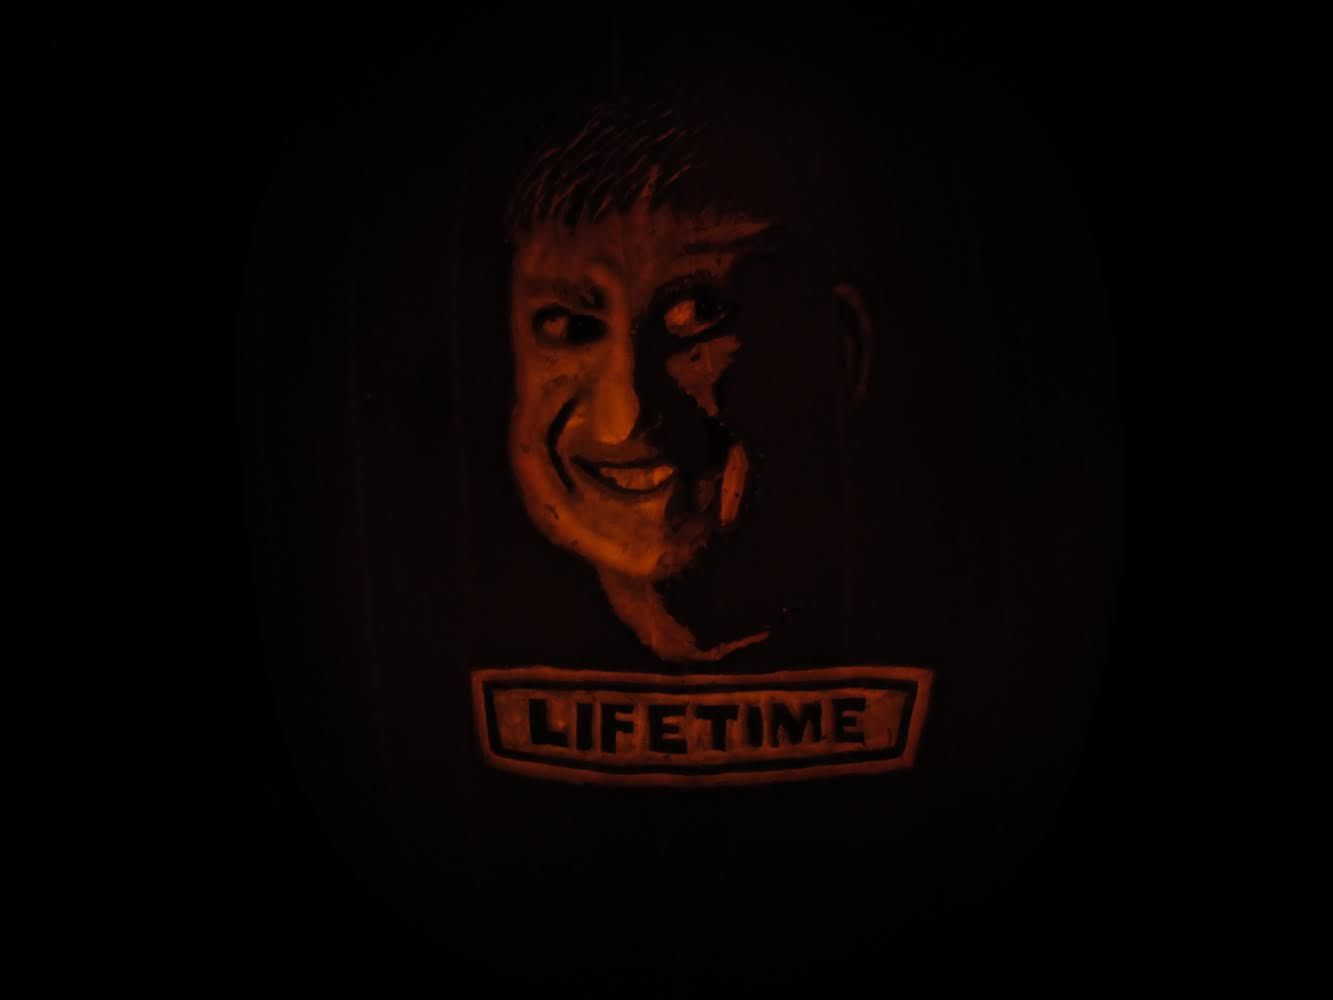 Win an iPad mini with your logo! Check it out here http://kick-fire.com/great-pumpkin-logo-contest-charlie-brown/  Entry #4 Lifetime Products Like your favorite to help it win! #thegreatpumpkinlogocontest